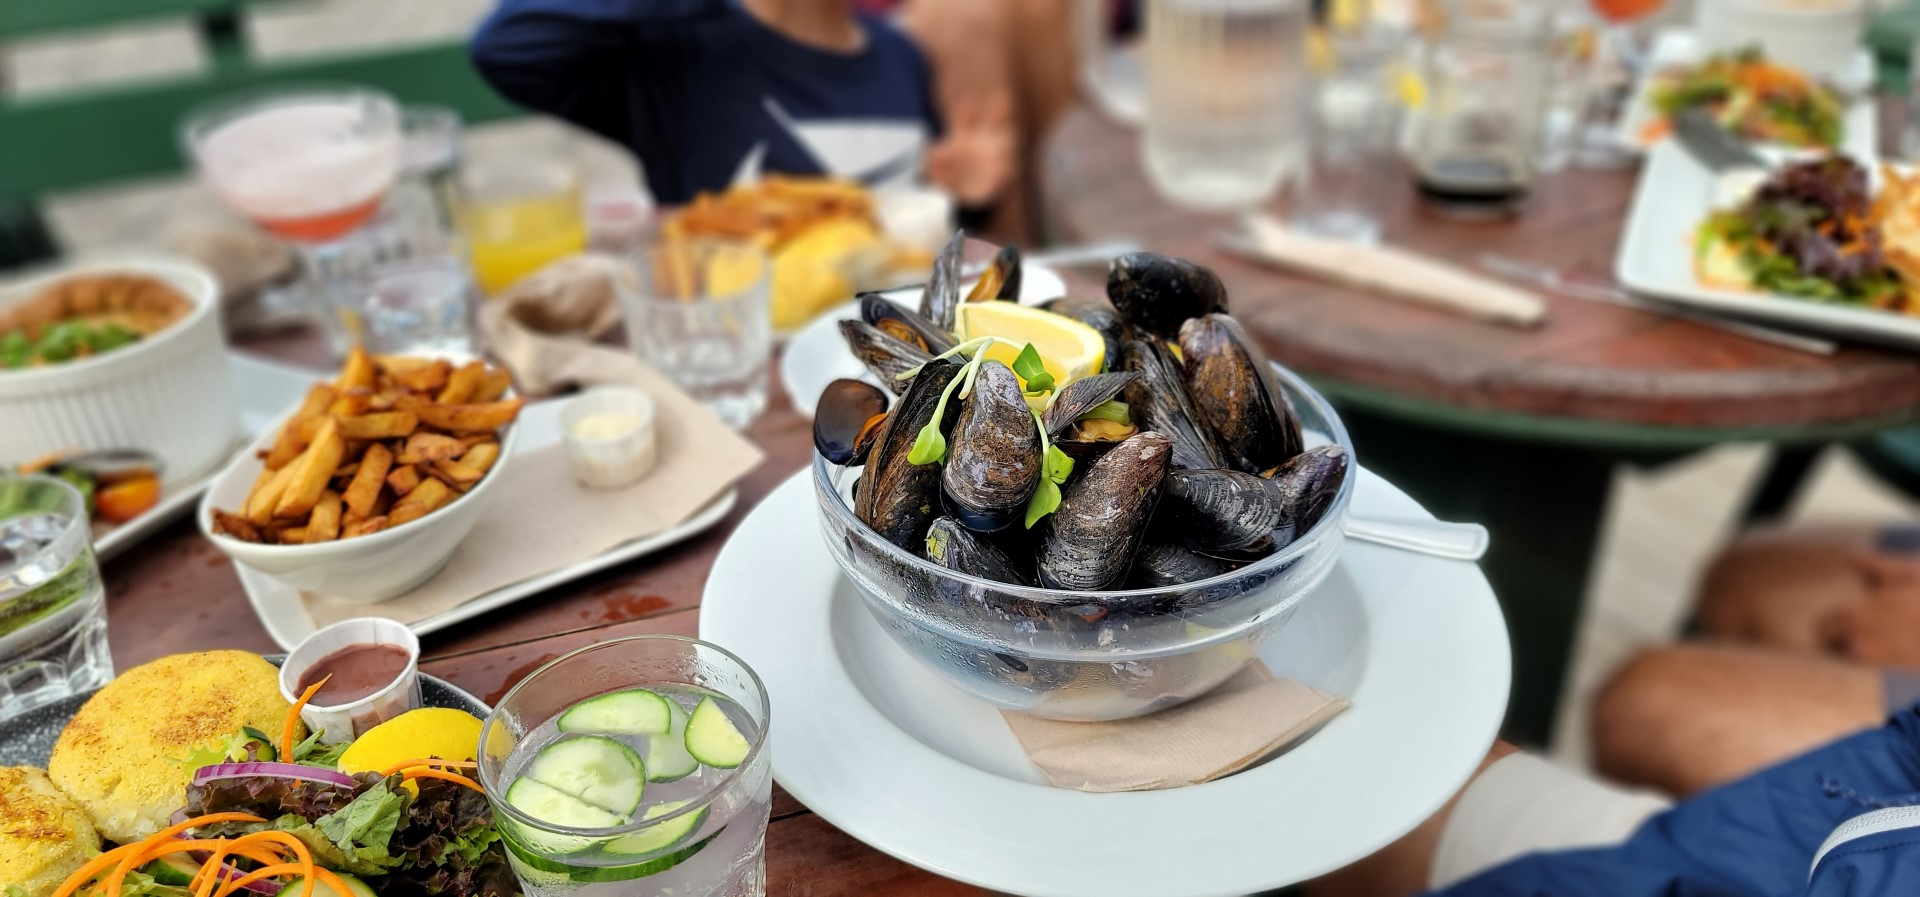 mussels in a bowl on a table with food